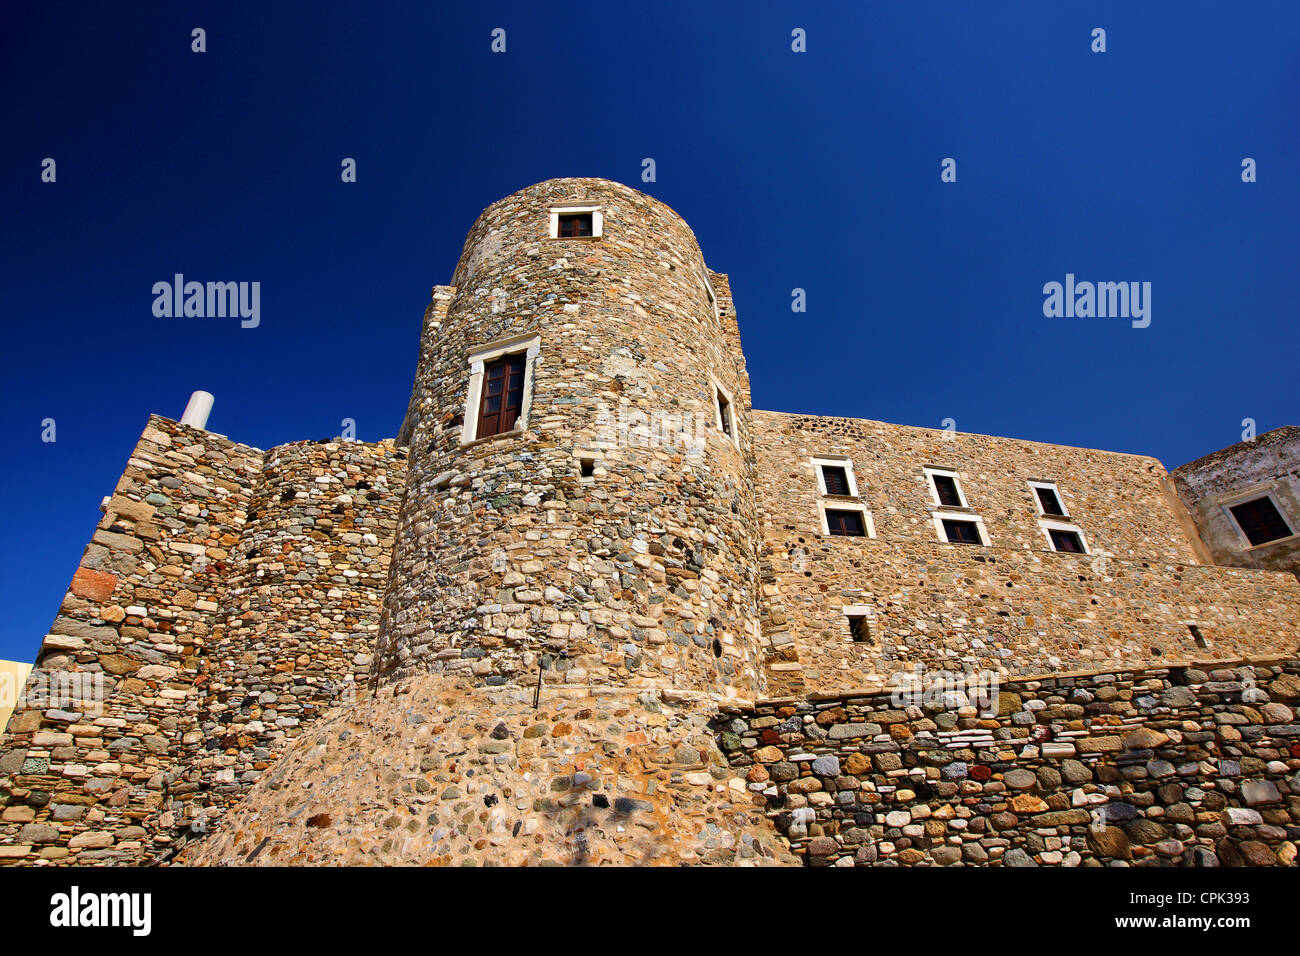 """The """"Crispi tower"""" (also known as """"Glezos tower"""") in the castle of Sanoudos, Chora of Naxos, Naxos island, Cyclades, Stock Photo"""